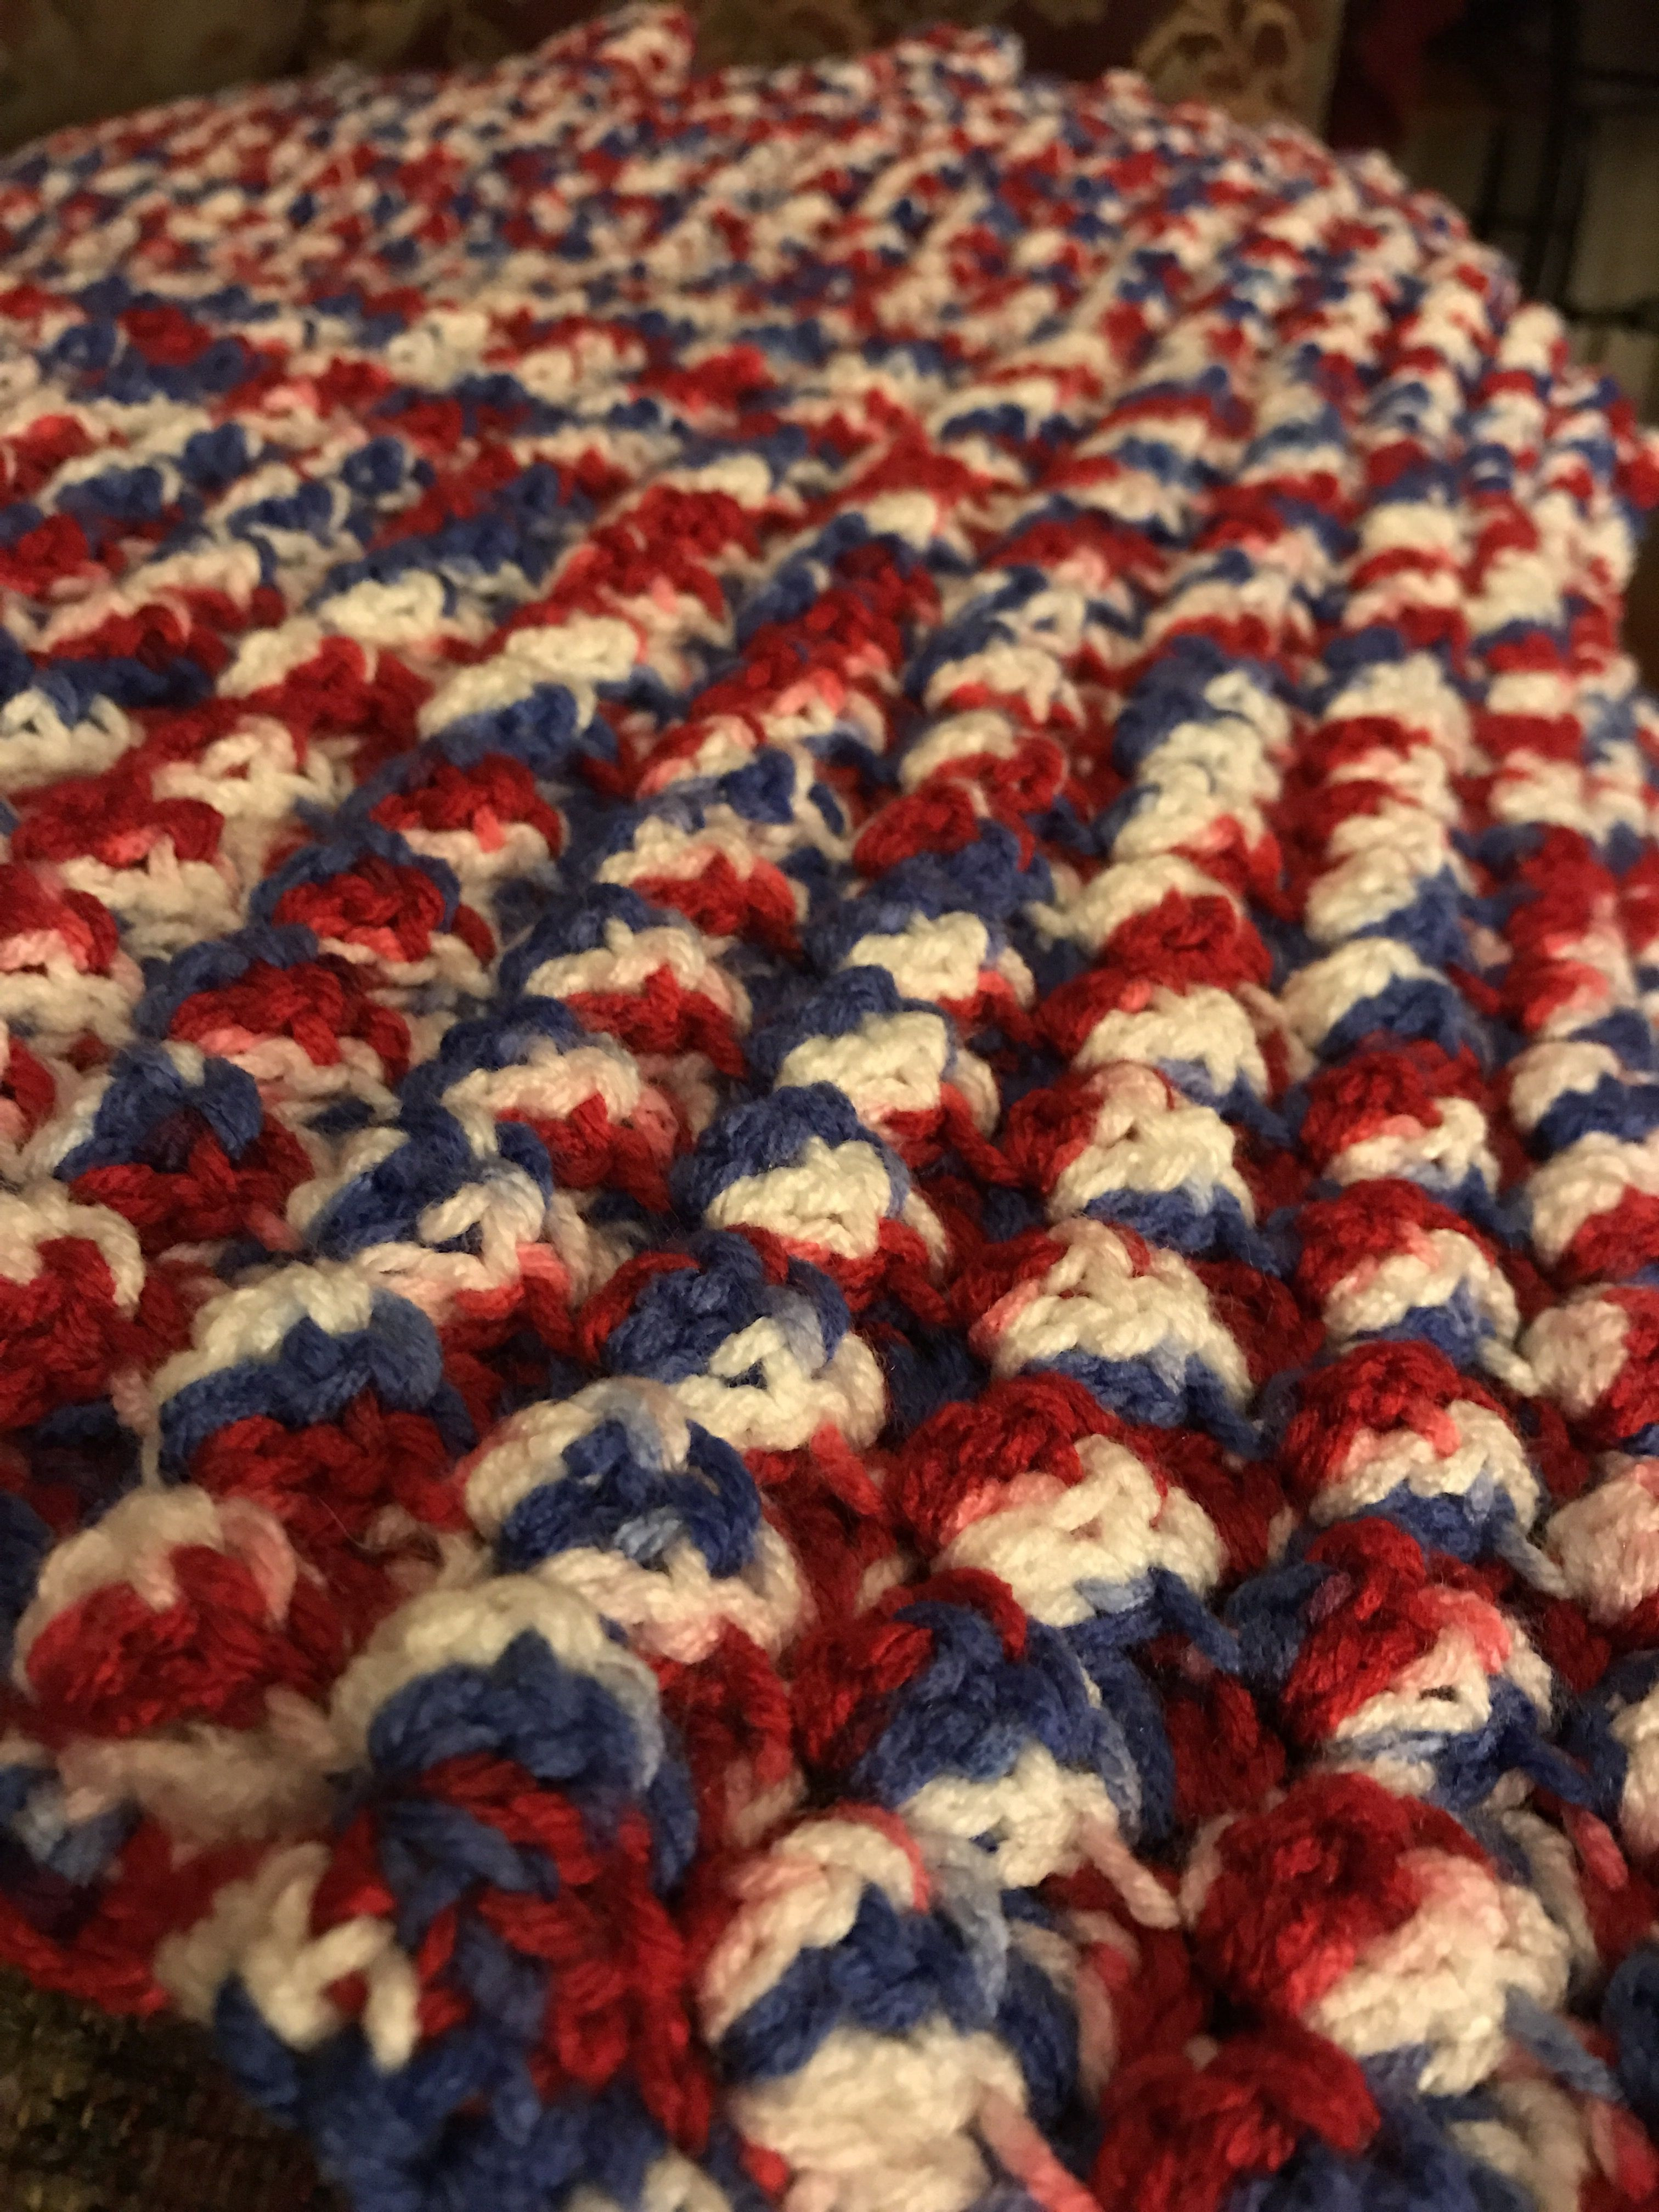 Best Of Puff Stitch In Red White Blue Variegated Yarn Red and Black Variegated Yarn Of Great 49 Pictures Red and Black Variegated Yarn